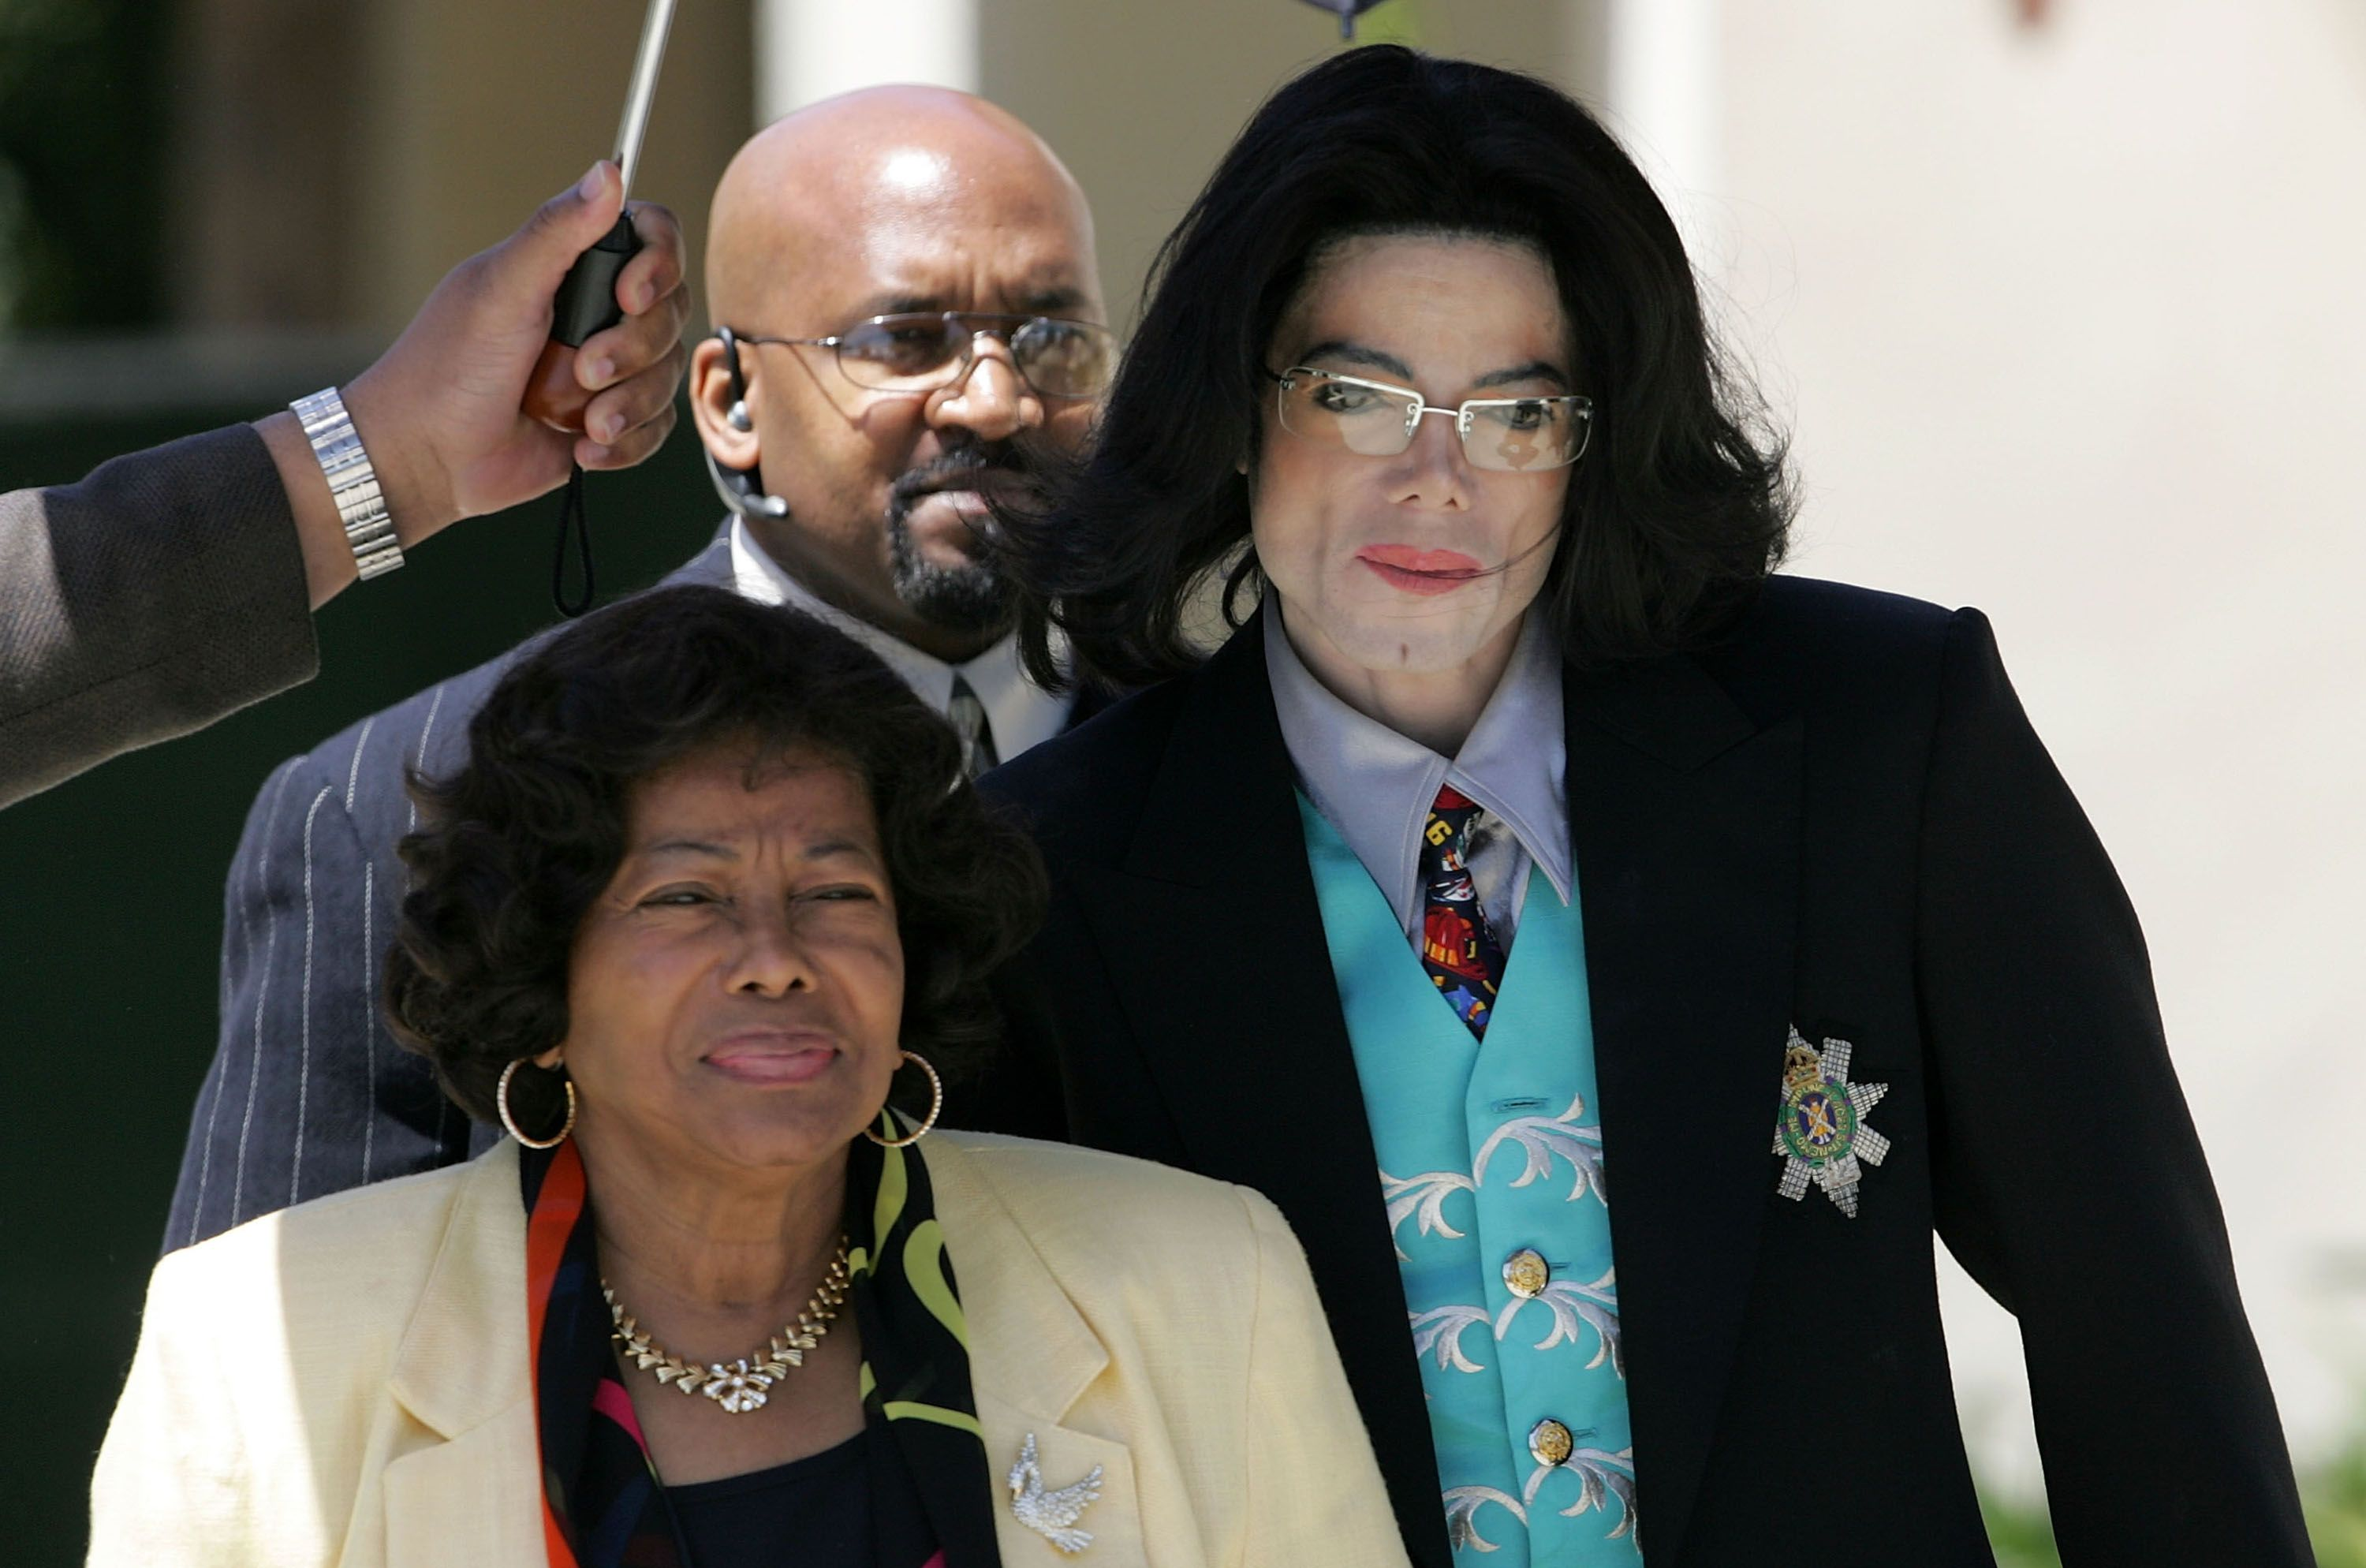 Michael Jackson at the Santa Barbara County Courthouse with his mother Katherine Jackson for the proceedings in his child molestation trial in 2005 | Source: Getty Images